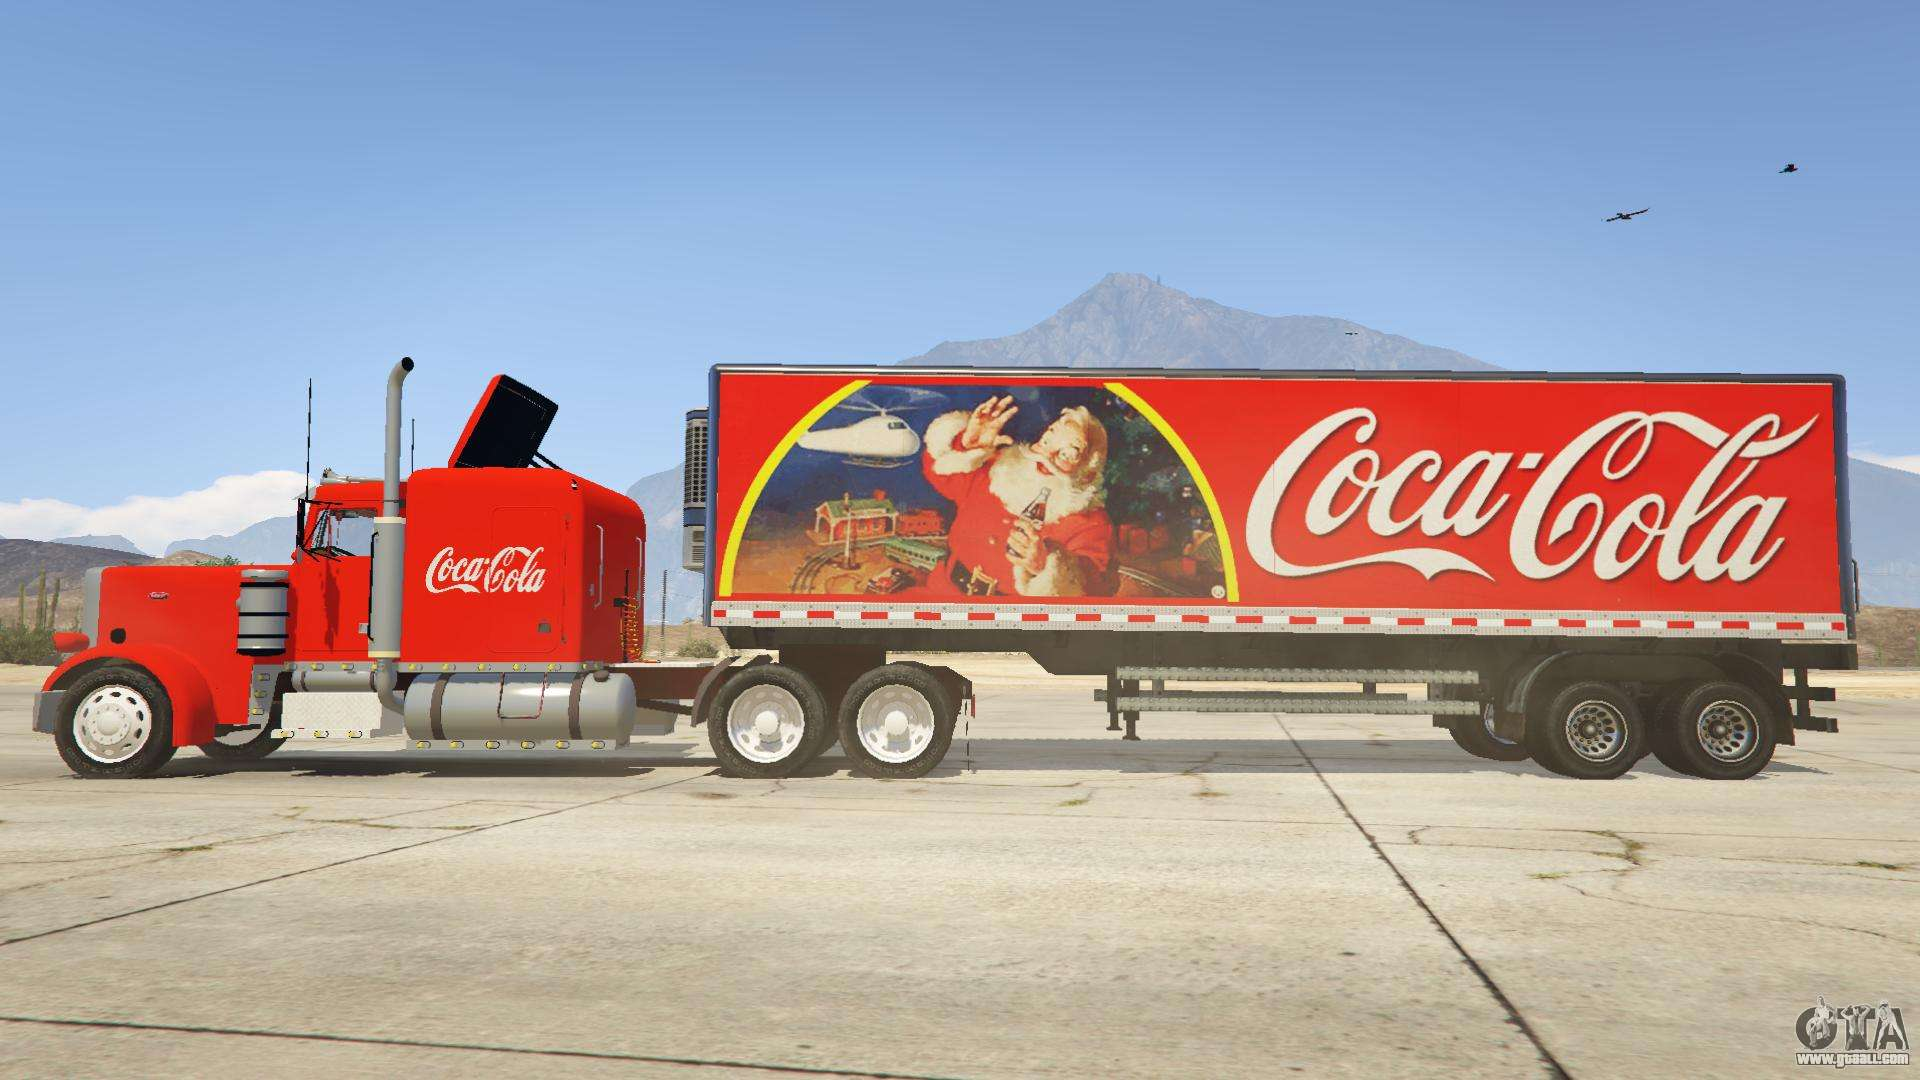 car trucks coloring pages with 74063 Coca Cola Truck V11 on 74063 Coca Cola Truck V11 also Drawn 20tractor 20animated further TF3 Optimus Prime G1 Trailer 182923577 together with Truck And Trailer Silhouette moreover Ice Cream Food Truck Design 852376.